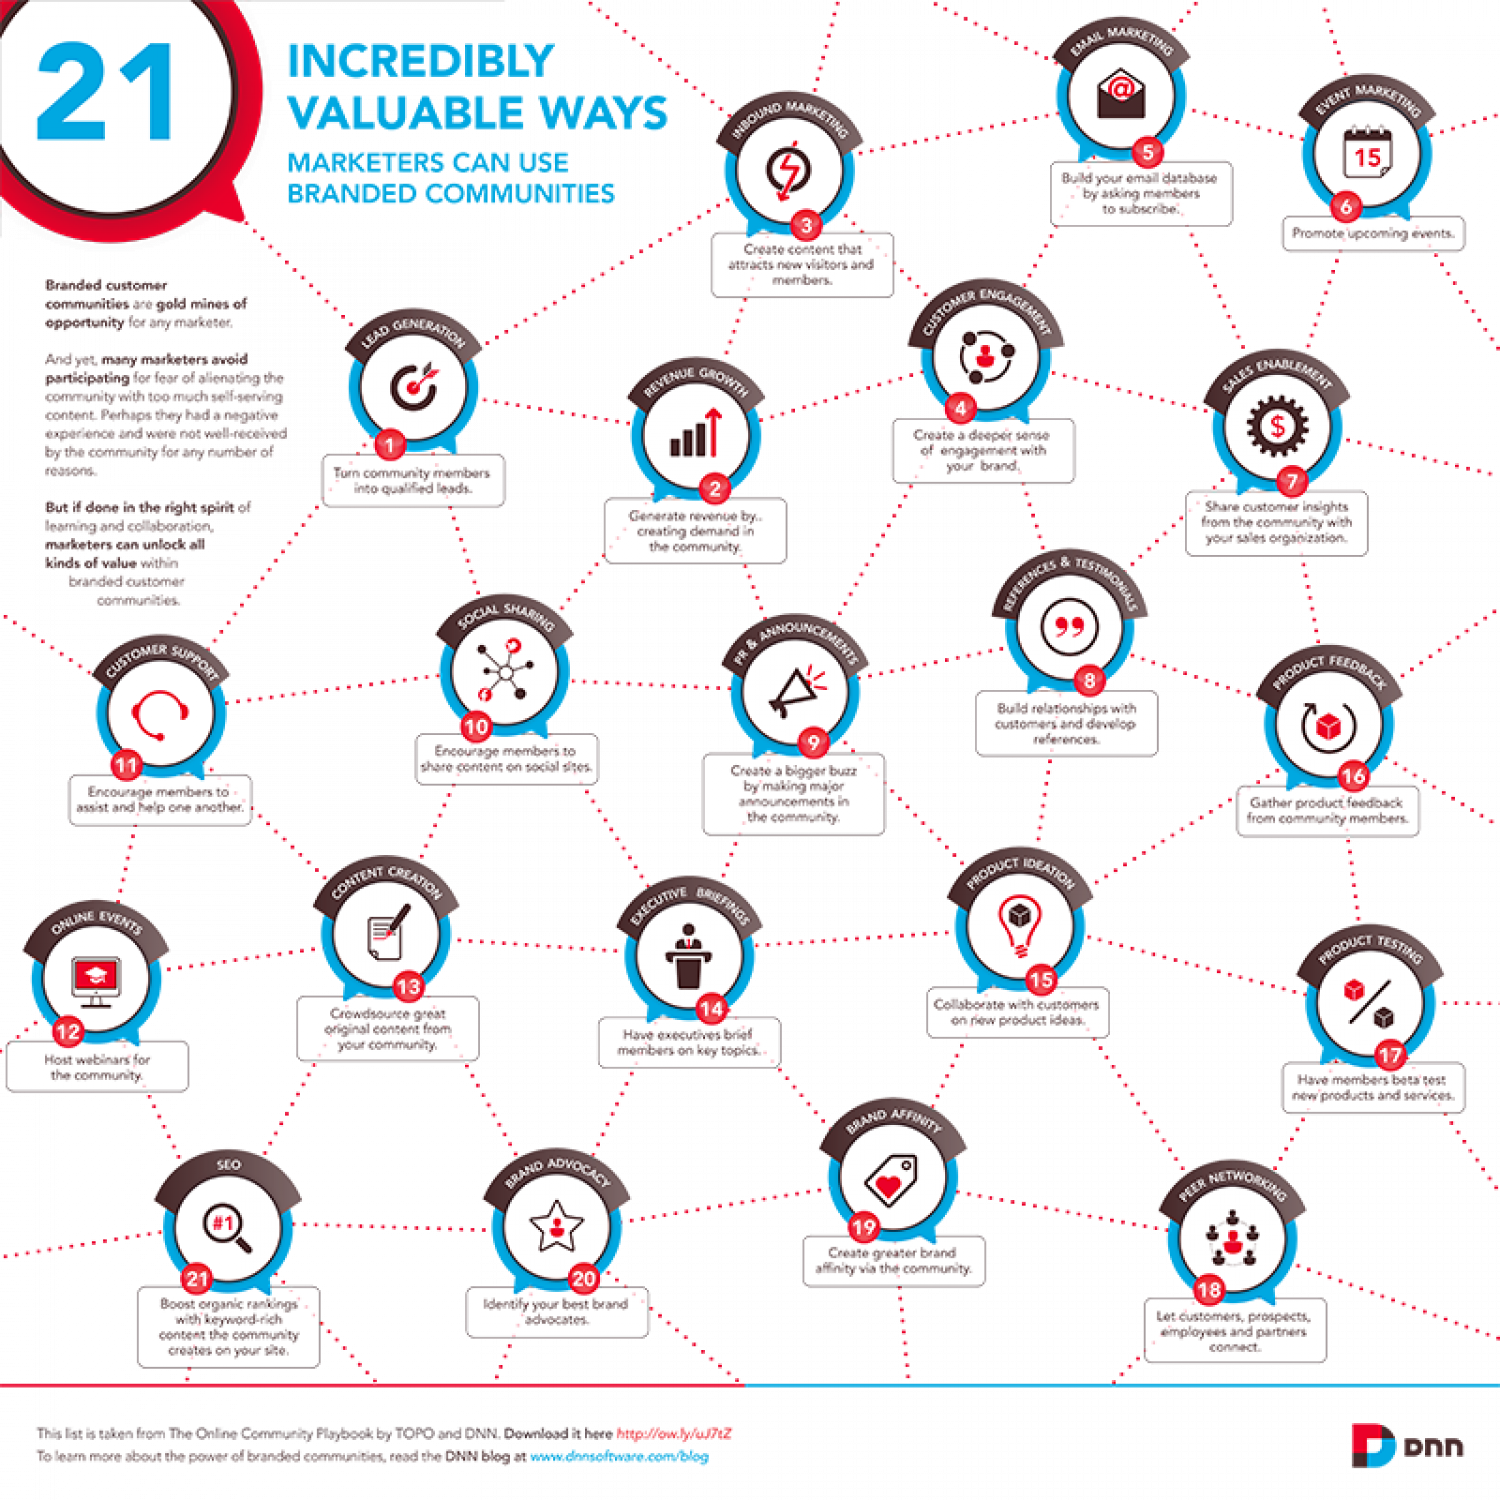 21 Incredibly Valuable Ways Marketers Can Use Branded Communities Infographic